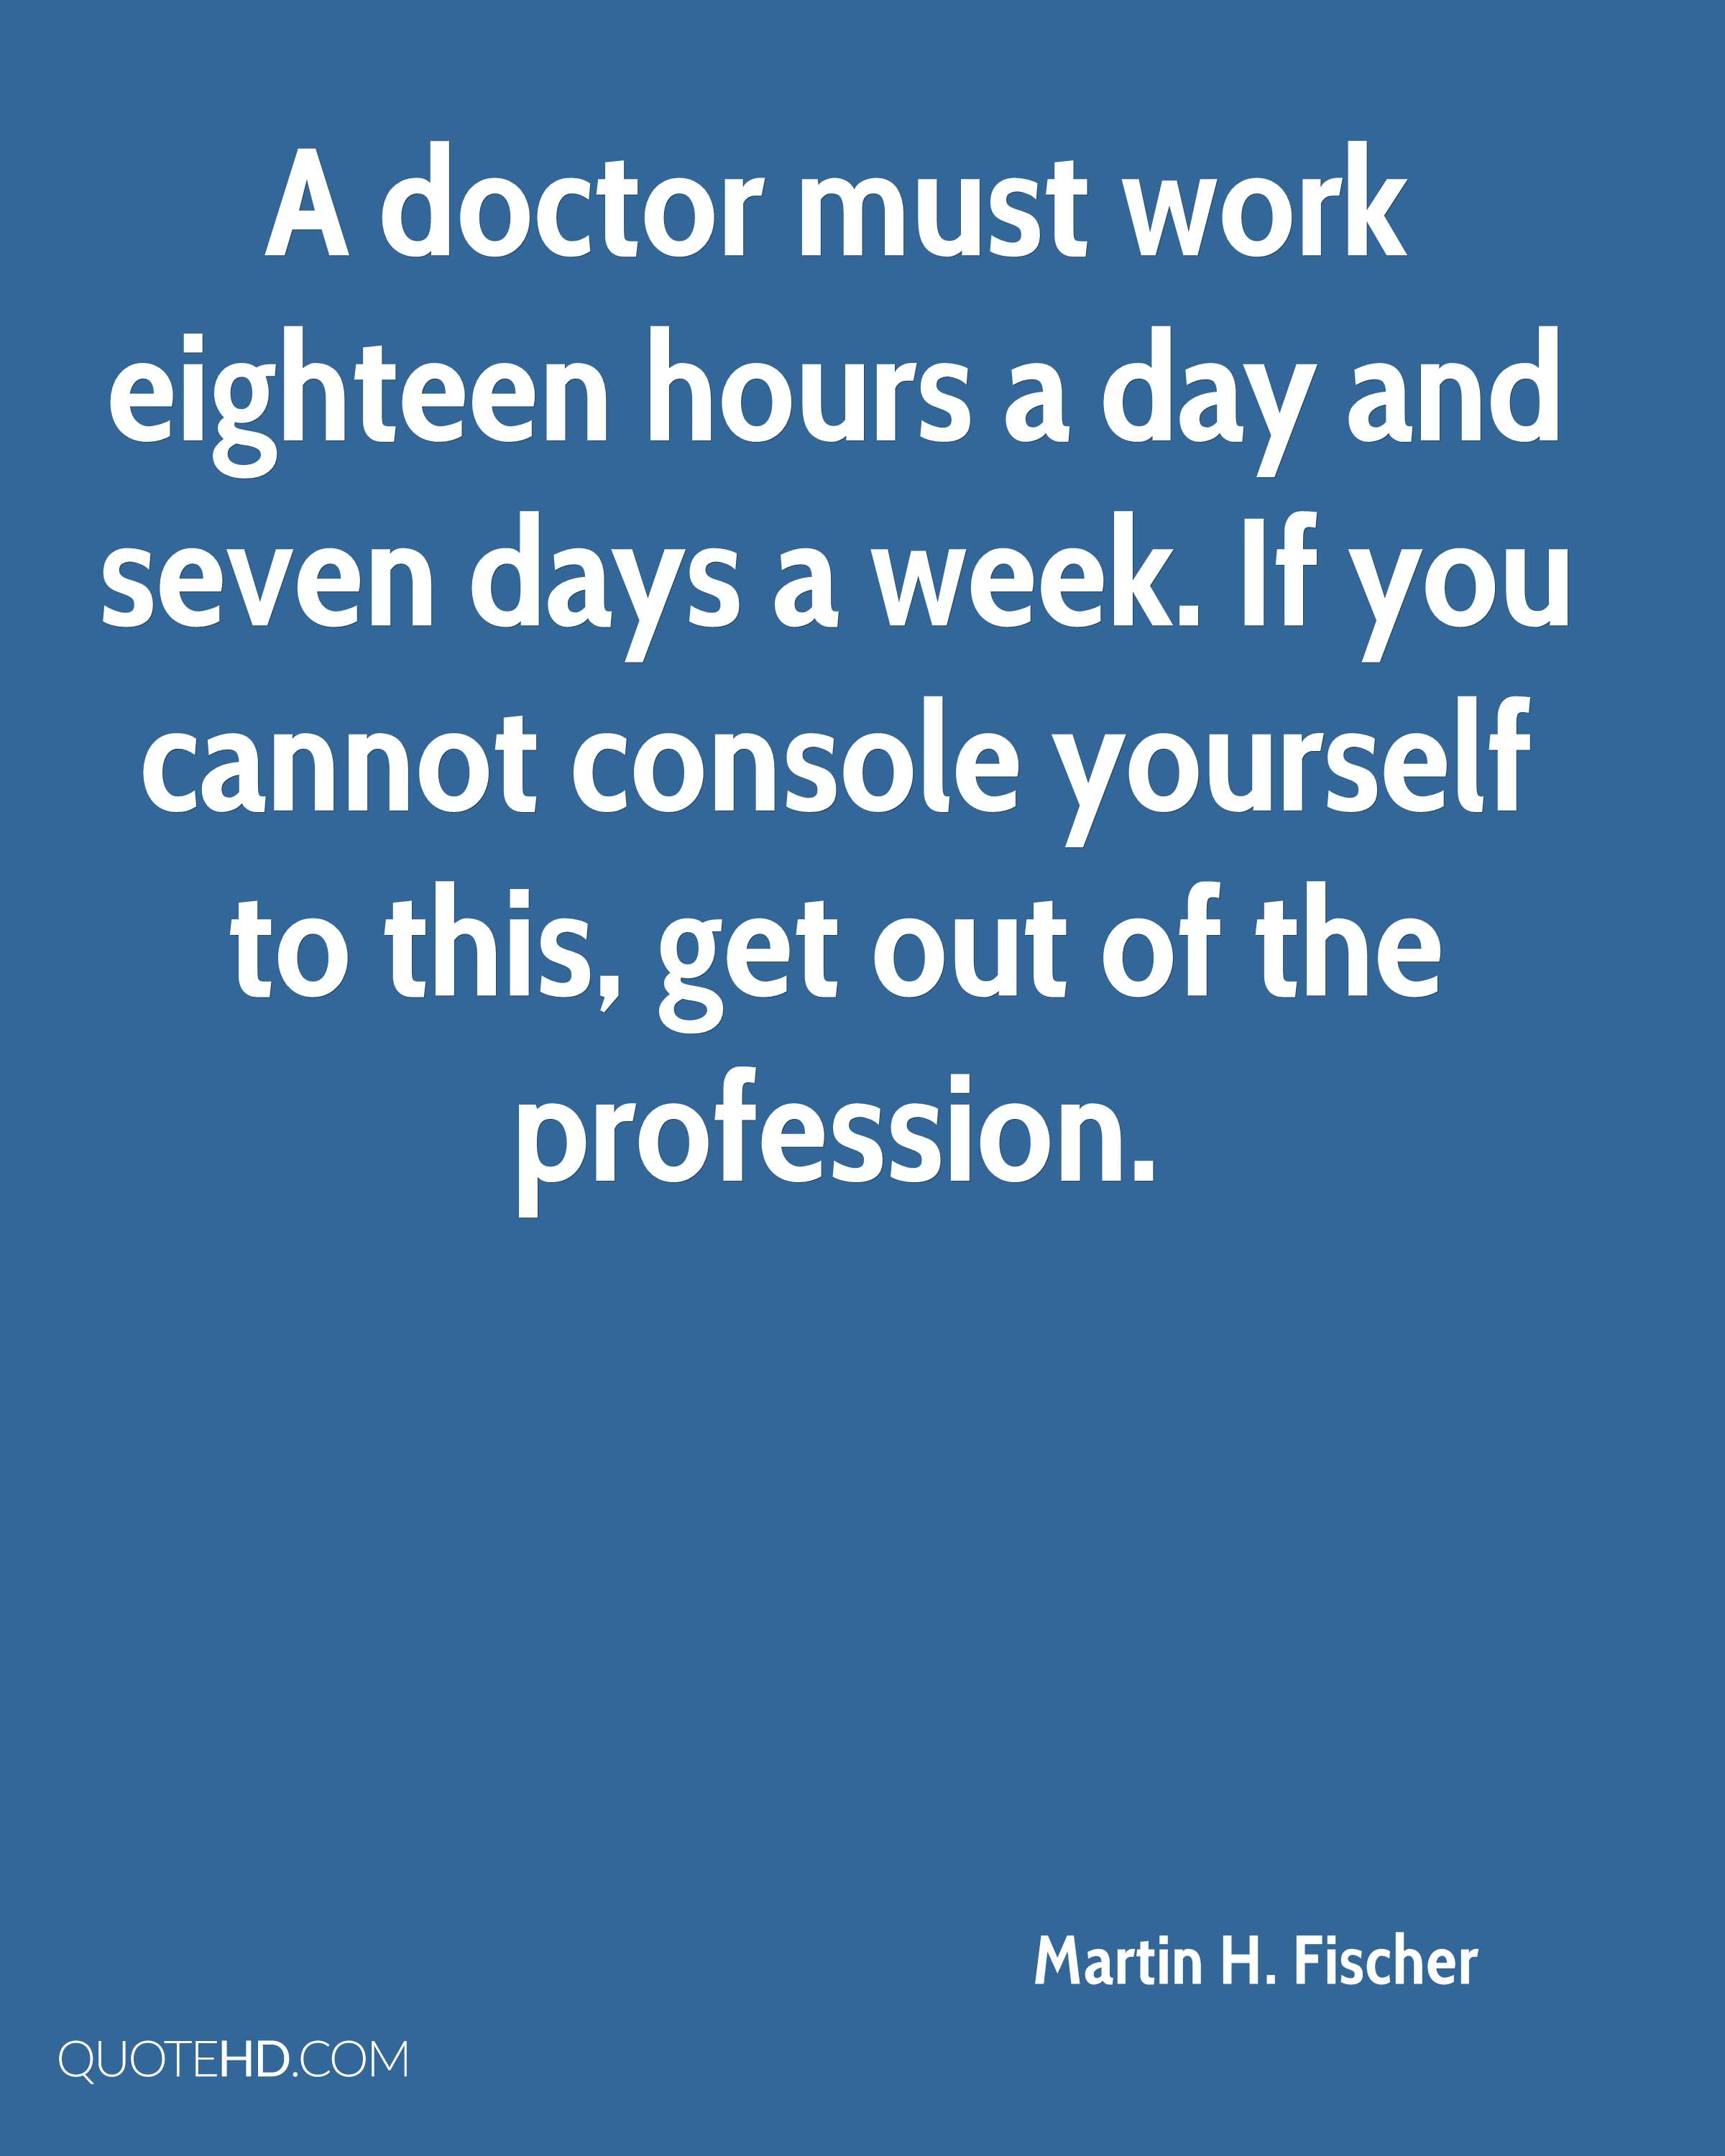 Working 7 Days A Week Quotes: Martin H. Fischer Work Quotes